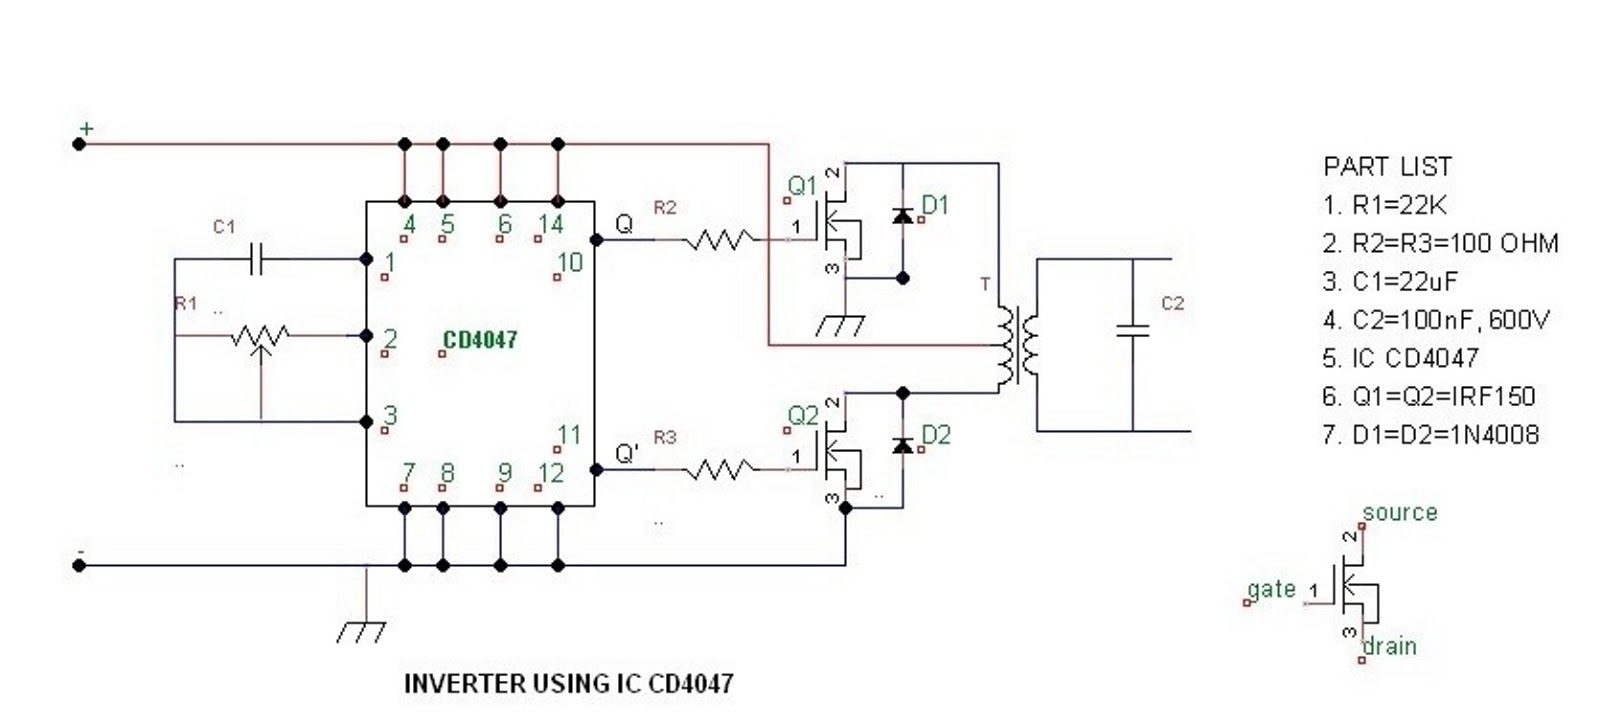 The Purpose To Build A Simple 100 Watt 500 Inverter Circuit 10000 Wiring Diagram Is Apply